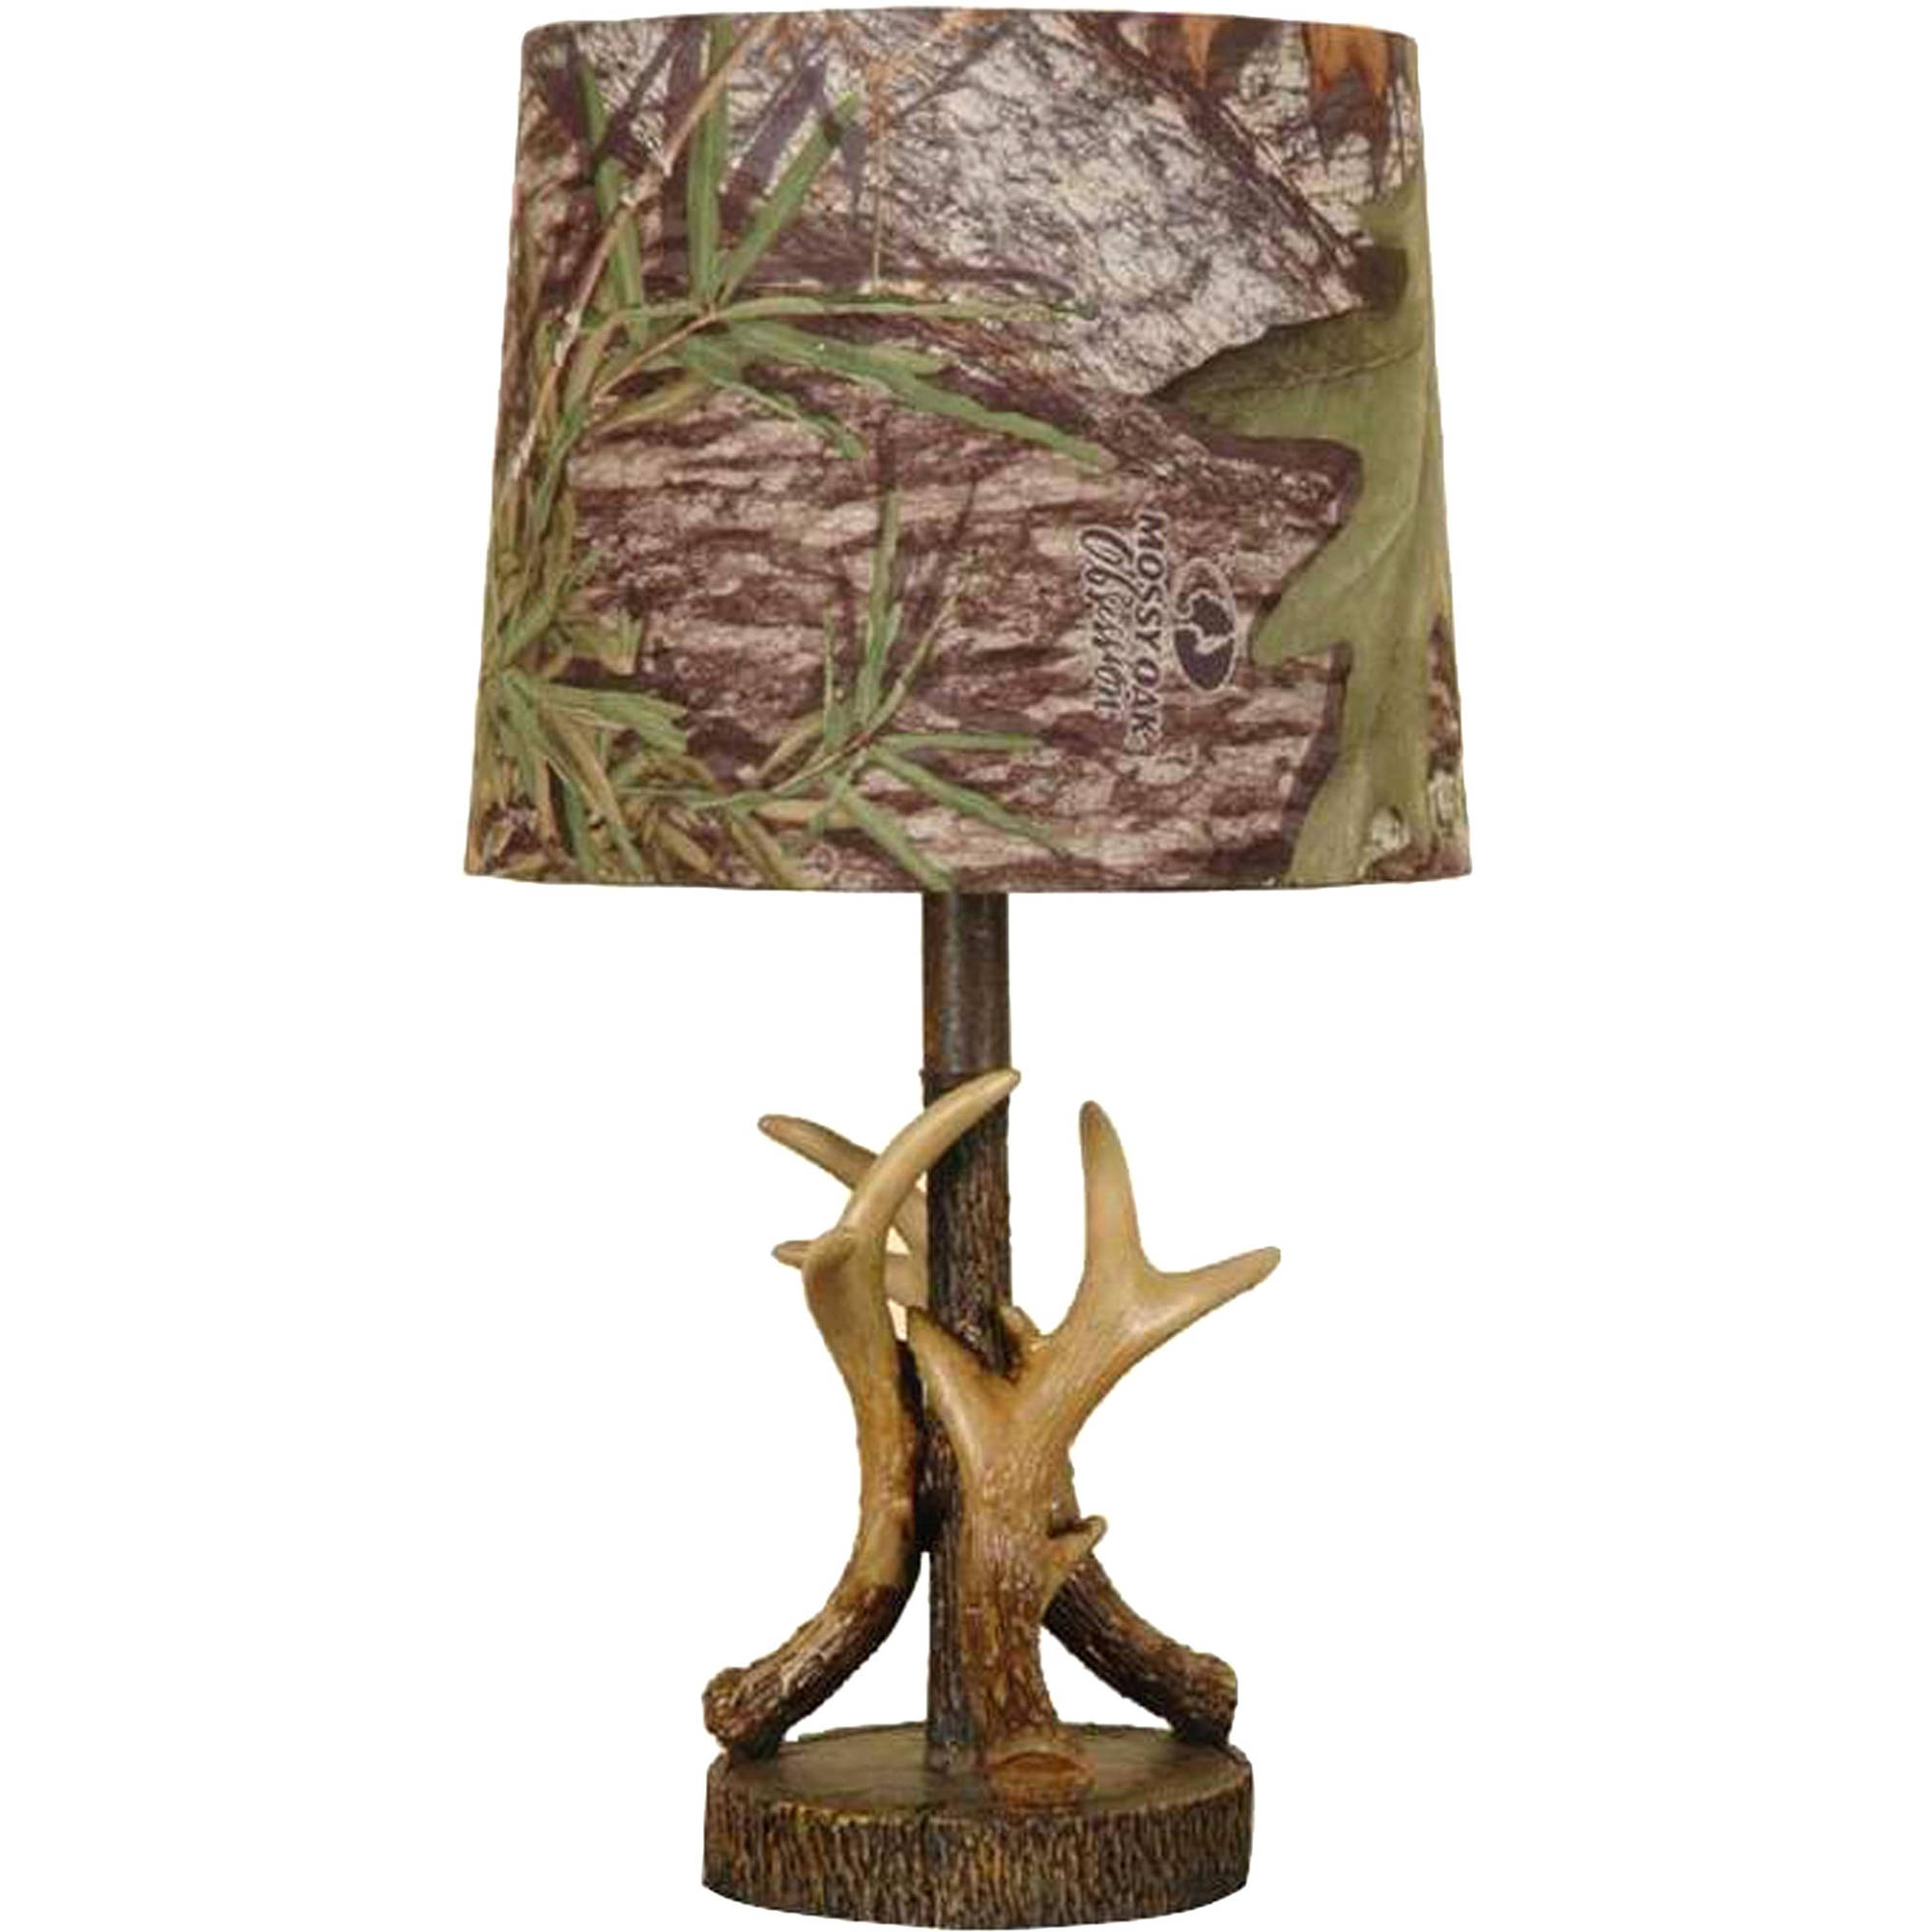 details about new mossy oak deer antler accent lamp home decor hunting living room man cave light tables furniture coffee skinny wall table design ideas black gold round glass